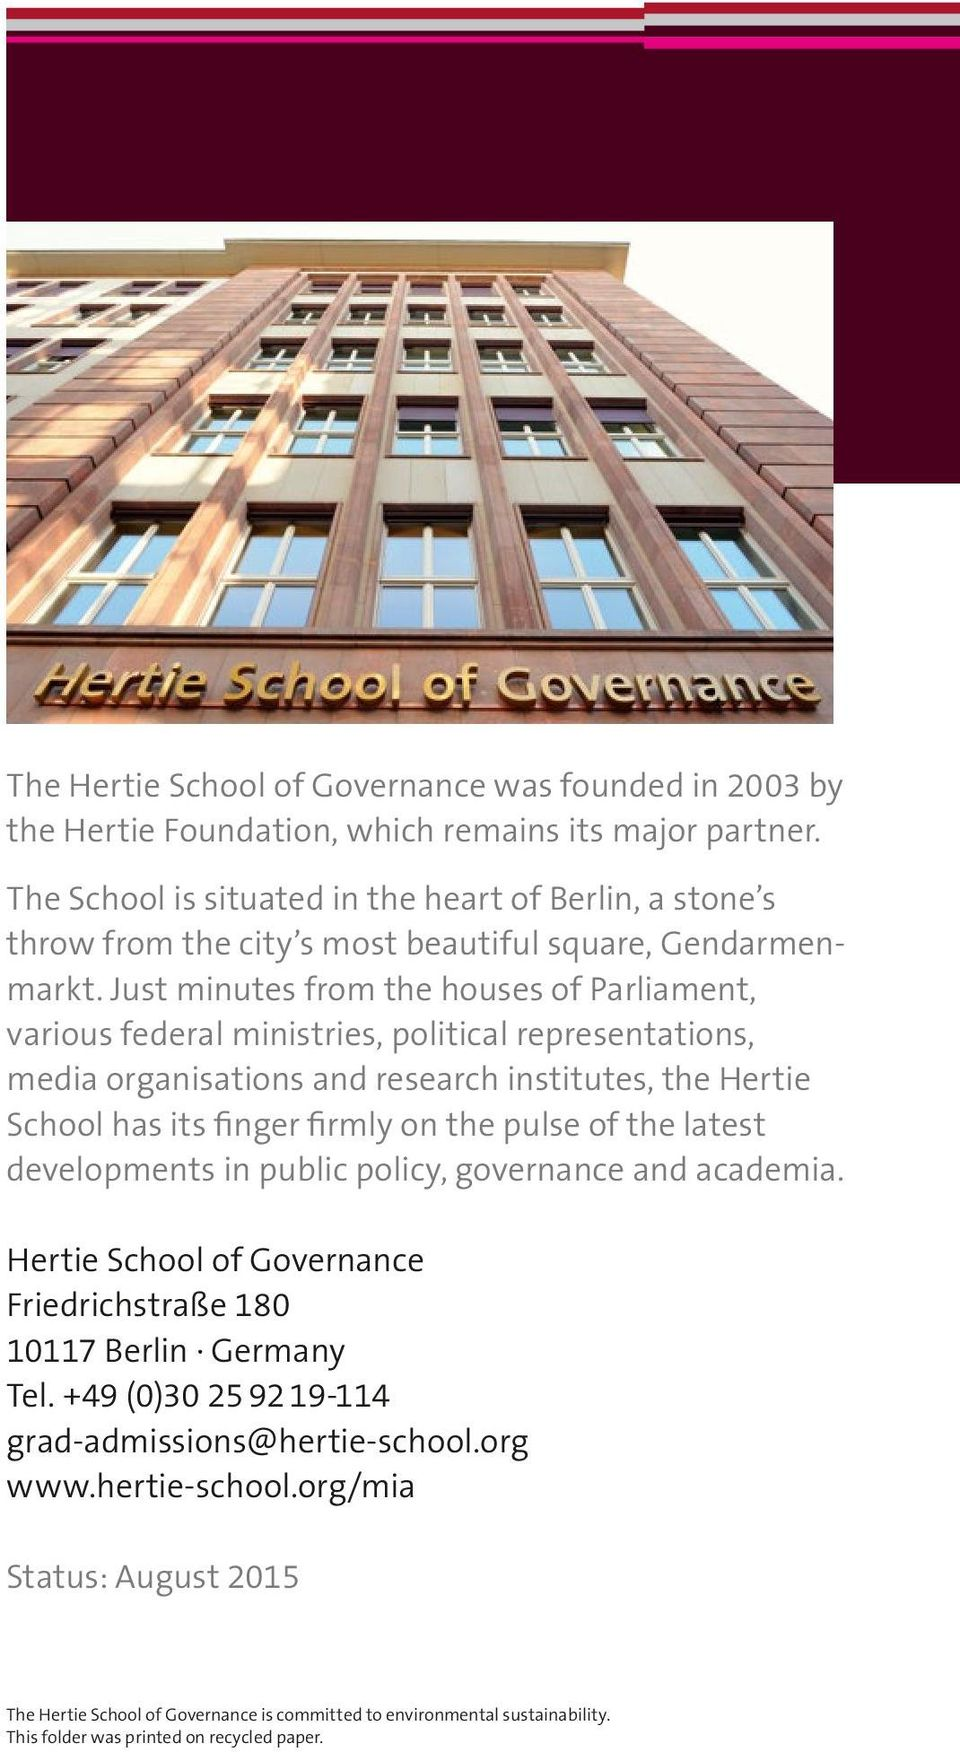 Just minutes from the houses of Parliament, various federal ministries, political represen tations, media organisations and research institutes, the Hertie School has its finger firmly on the pulse